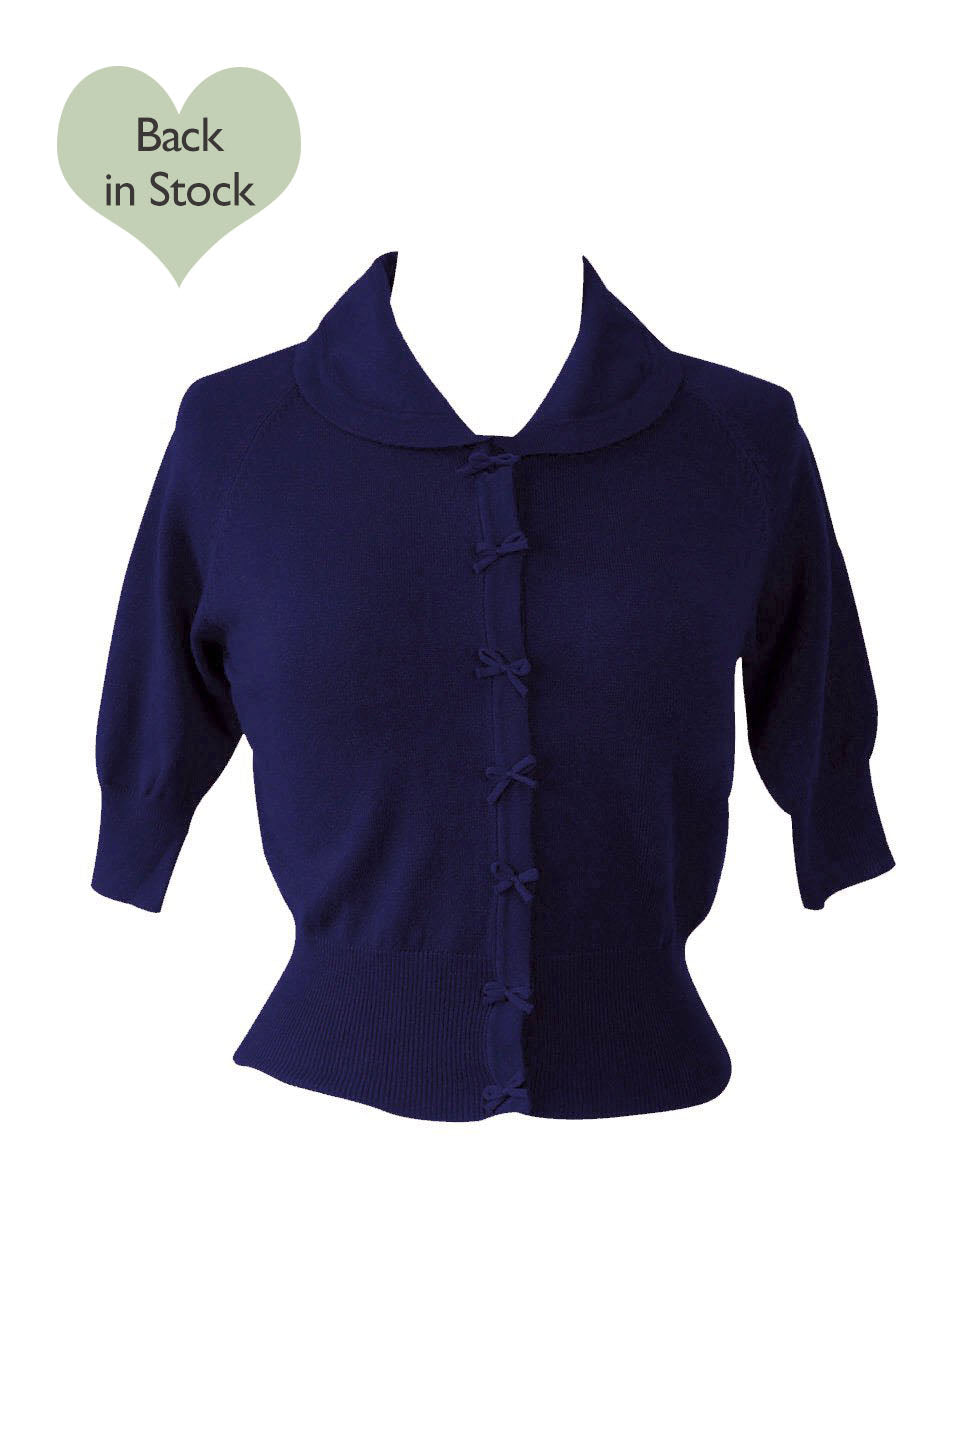 Cropped Navy Cardigan Sweater With Bow Details -1950s style | Weekend Doll